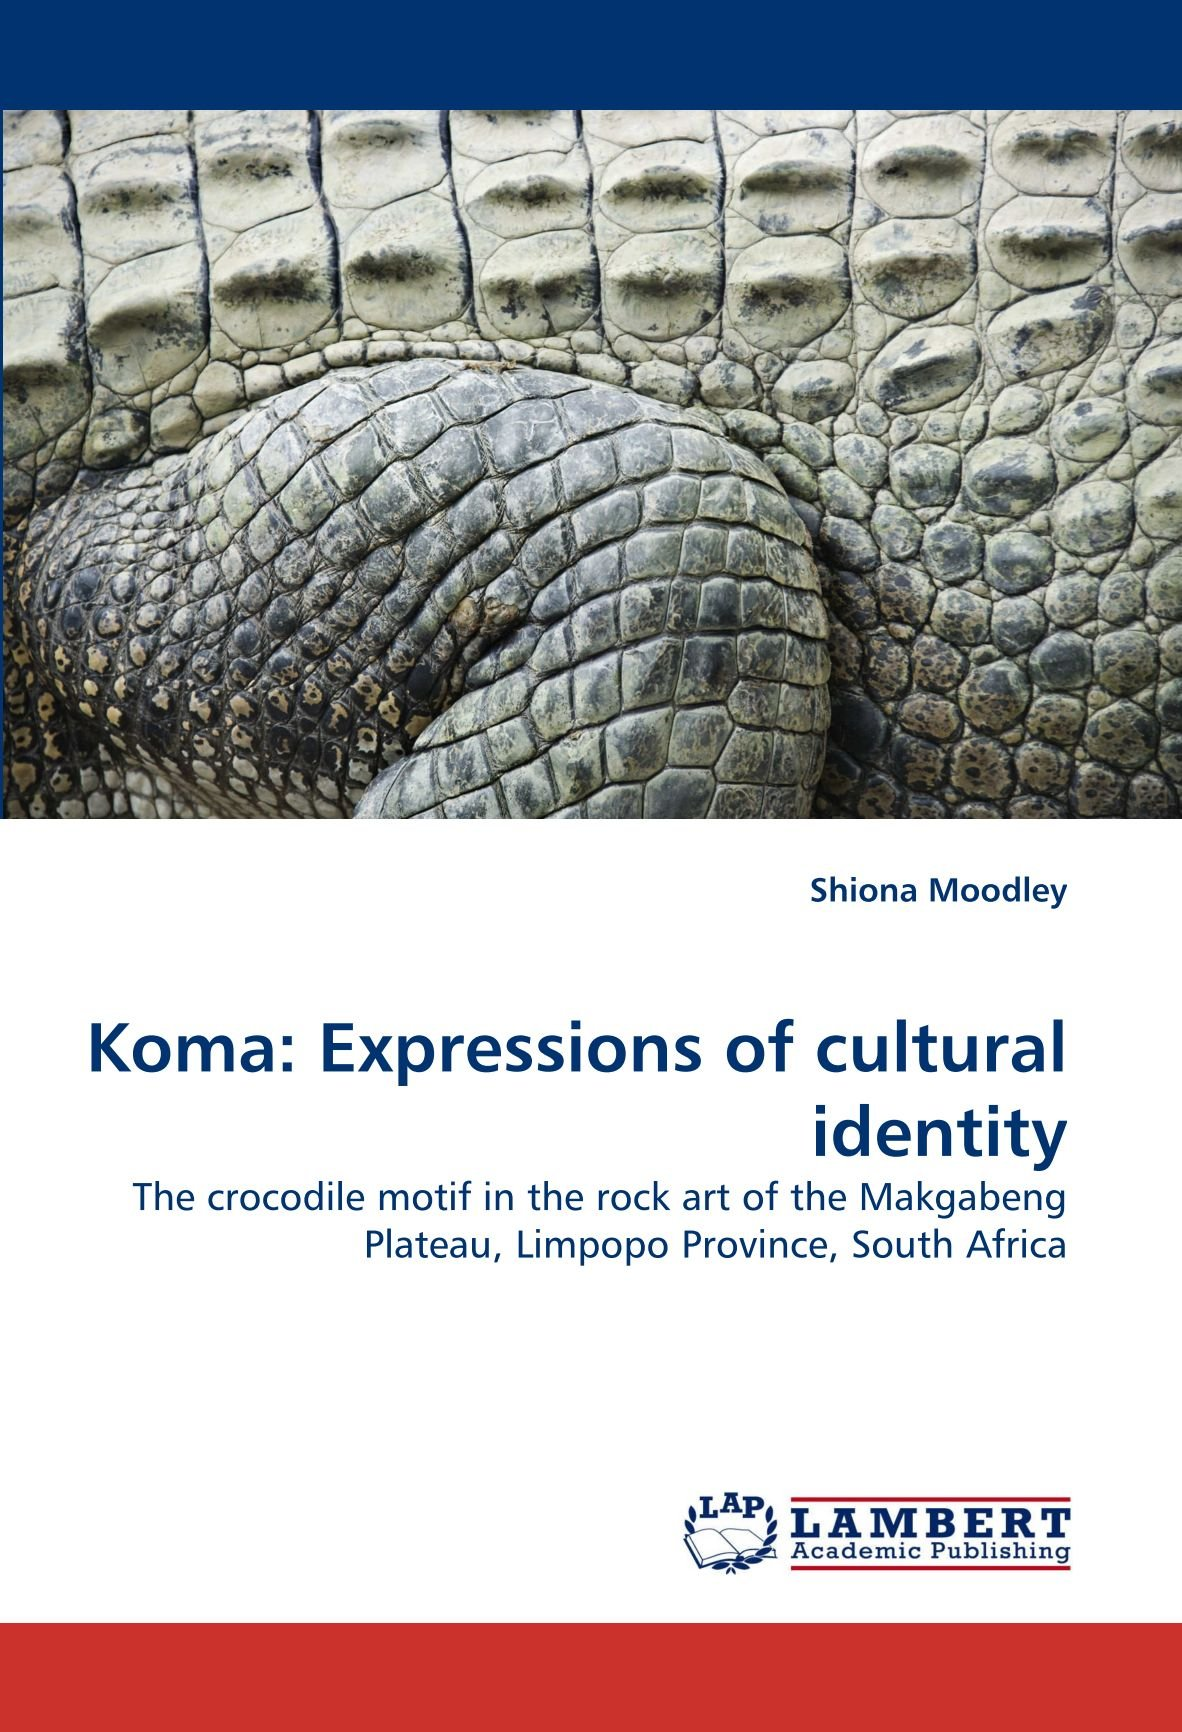 Download Koma: Expressions of cultural identity: The crocodile motif in the rock art of the Makgabeng Plateau, Limpopo Province, South Africa PDF